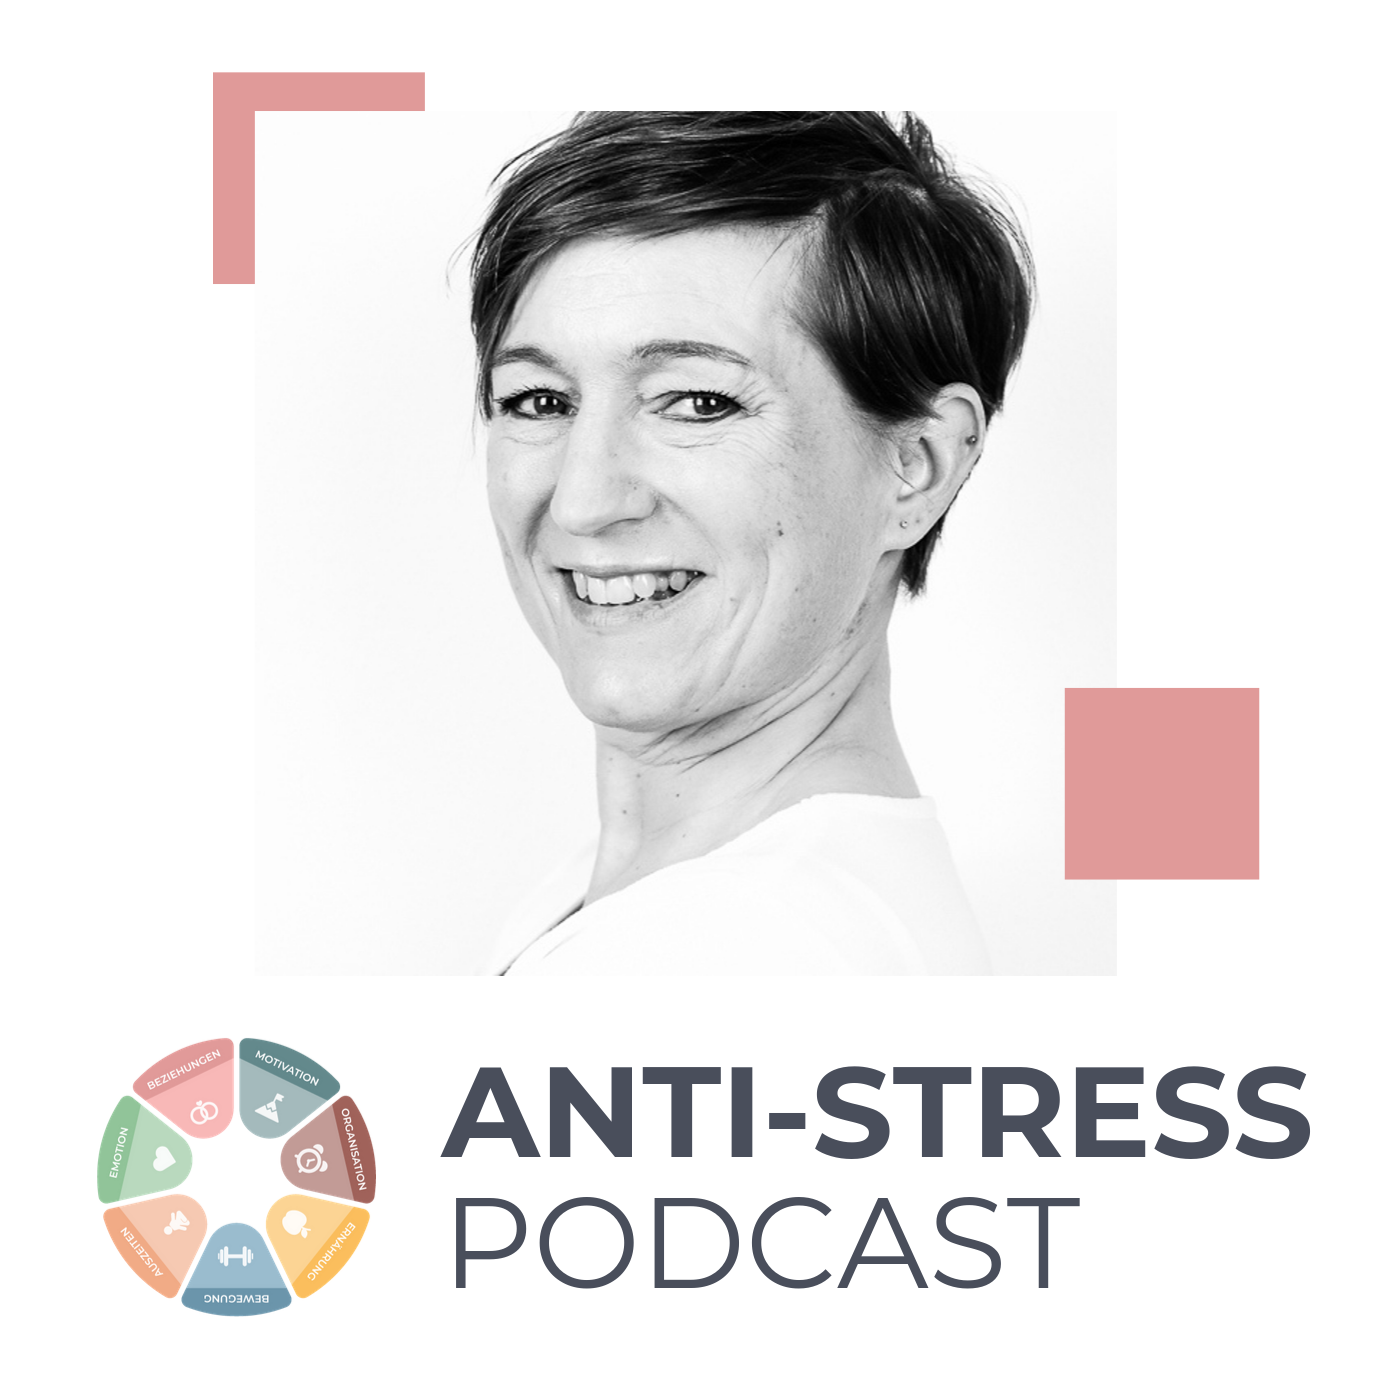 Der Anti-Stress-Podcast